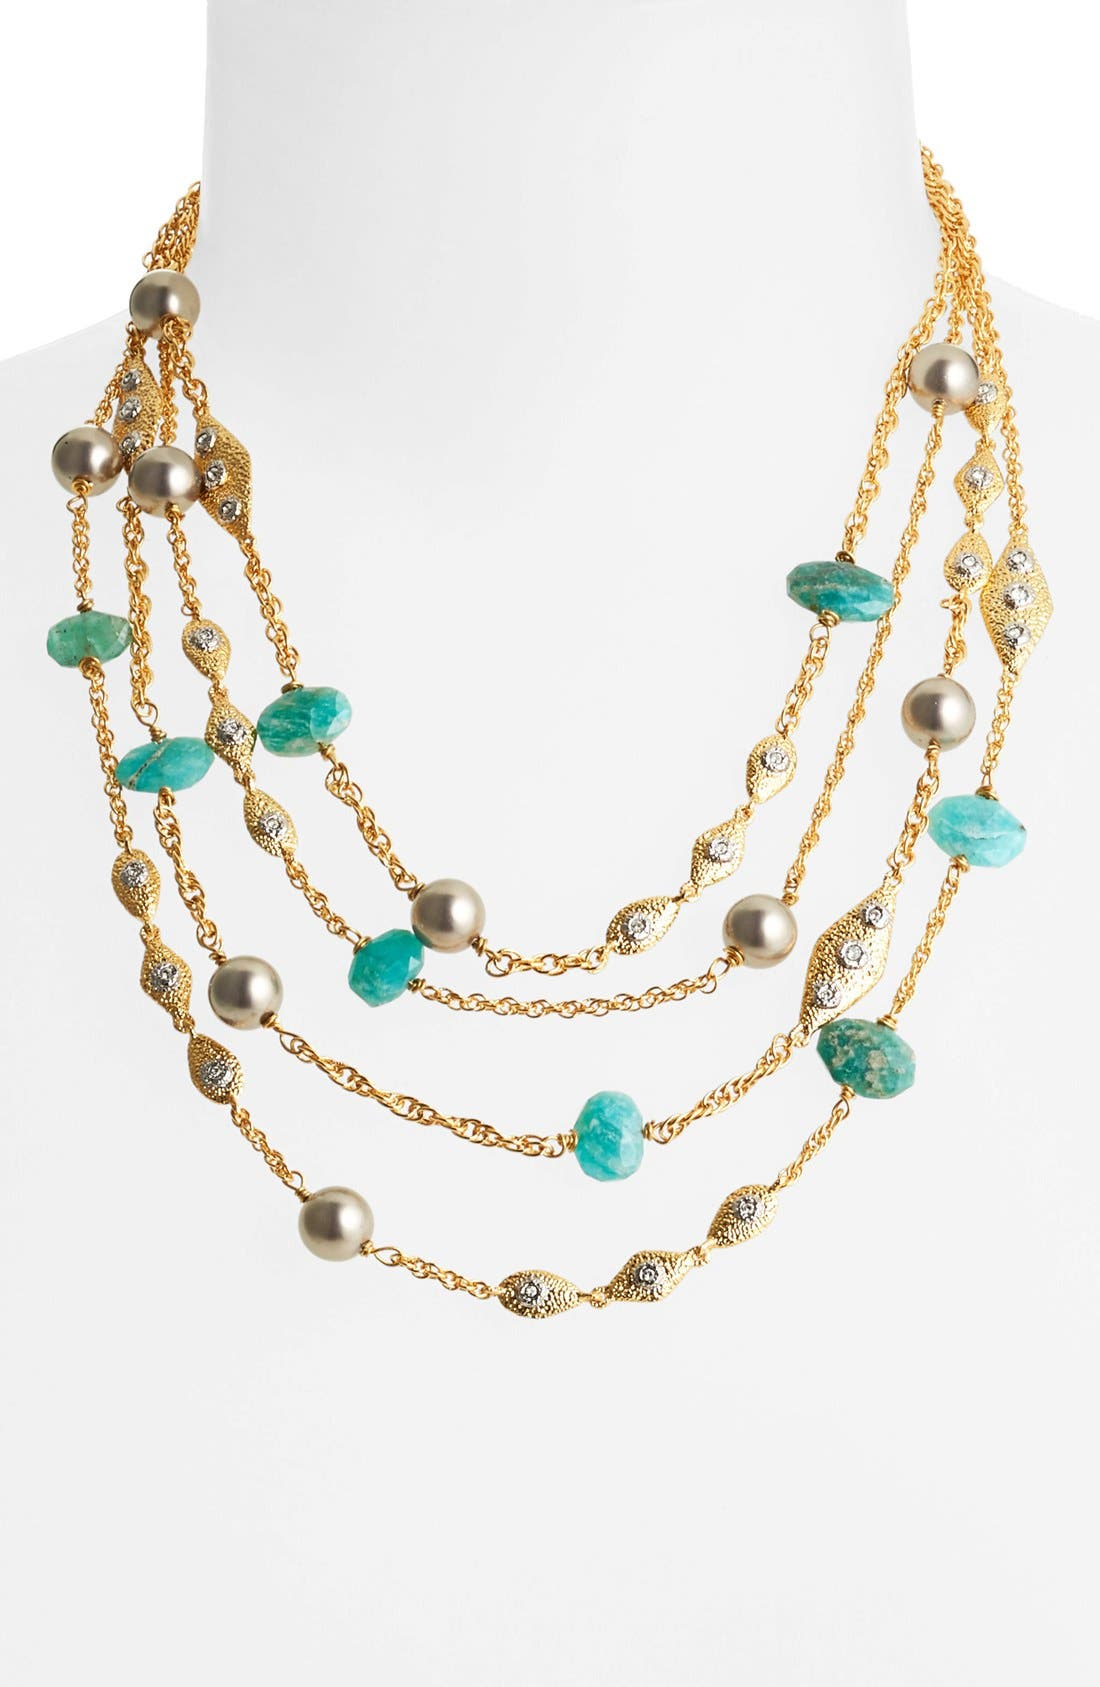 Alternate Image 1 Selected - Alexis Bittar 'Elements' Multistrand Necklace